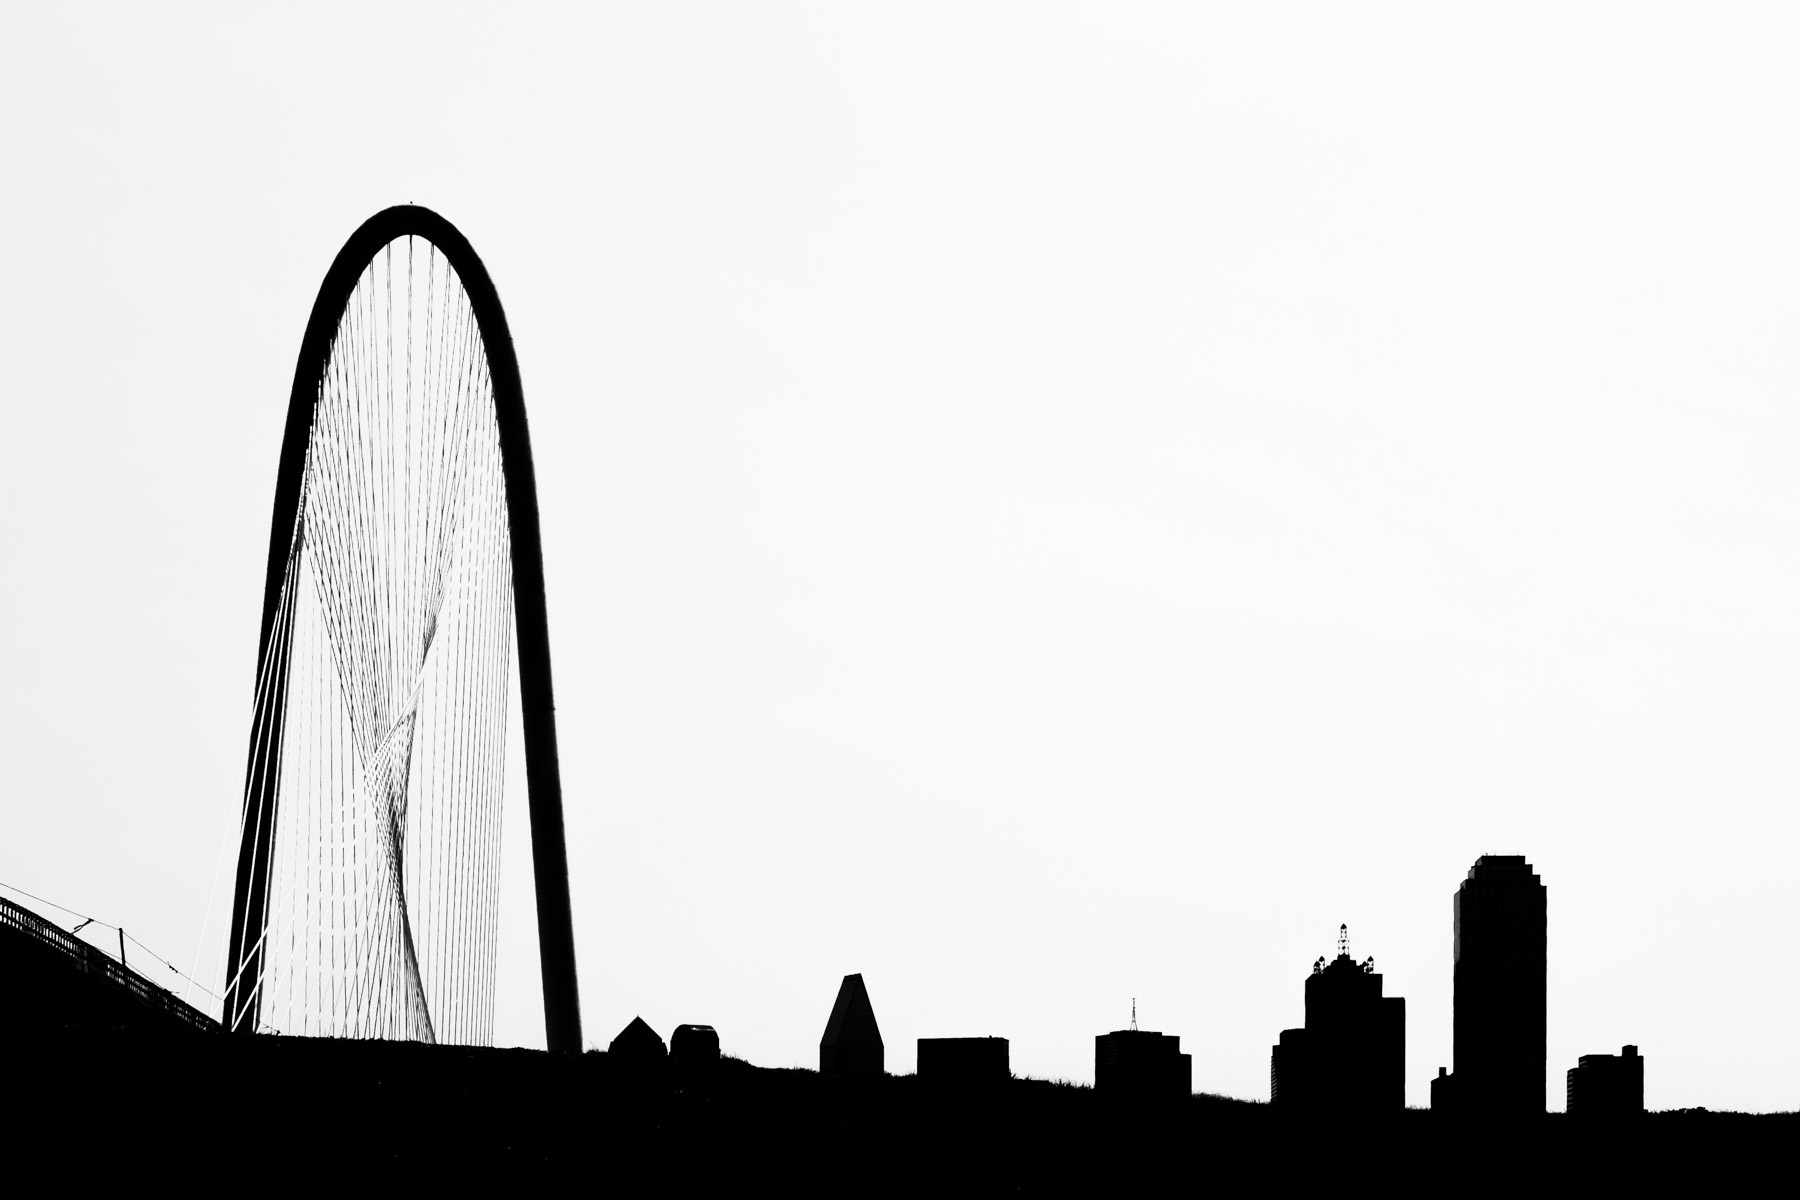 Dallas' Santiago Calatrava-designed Margaret Hunt Hill Bridge rises over the city's skyline.